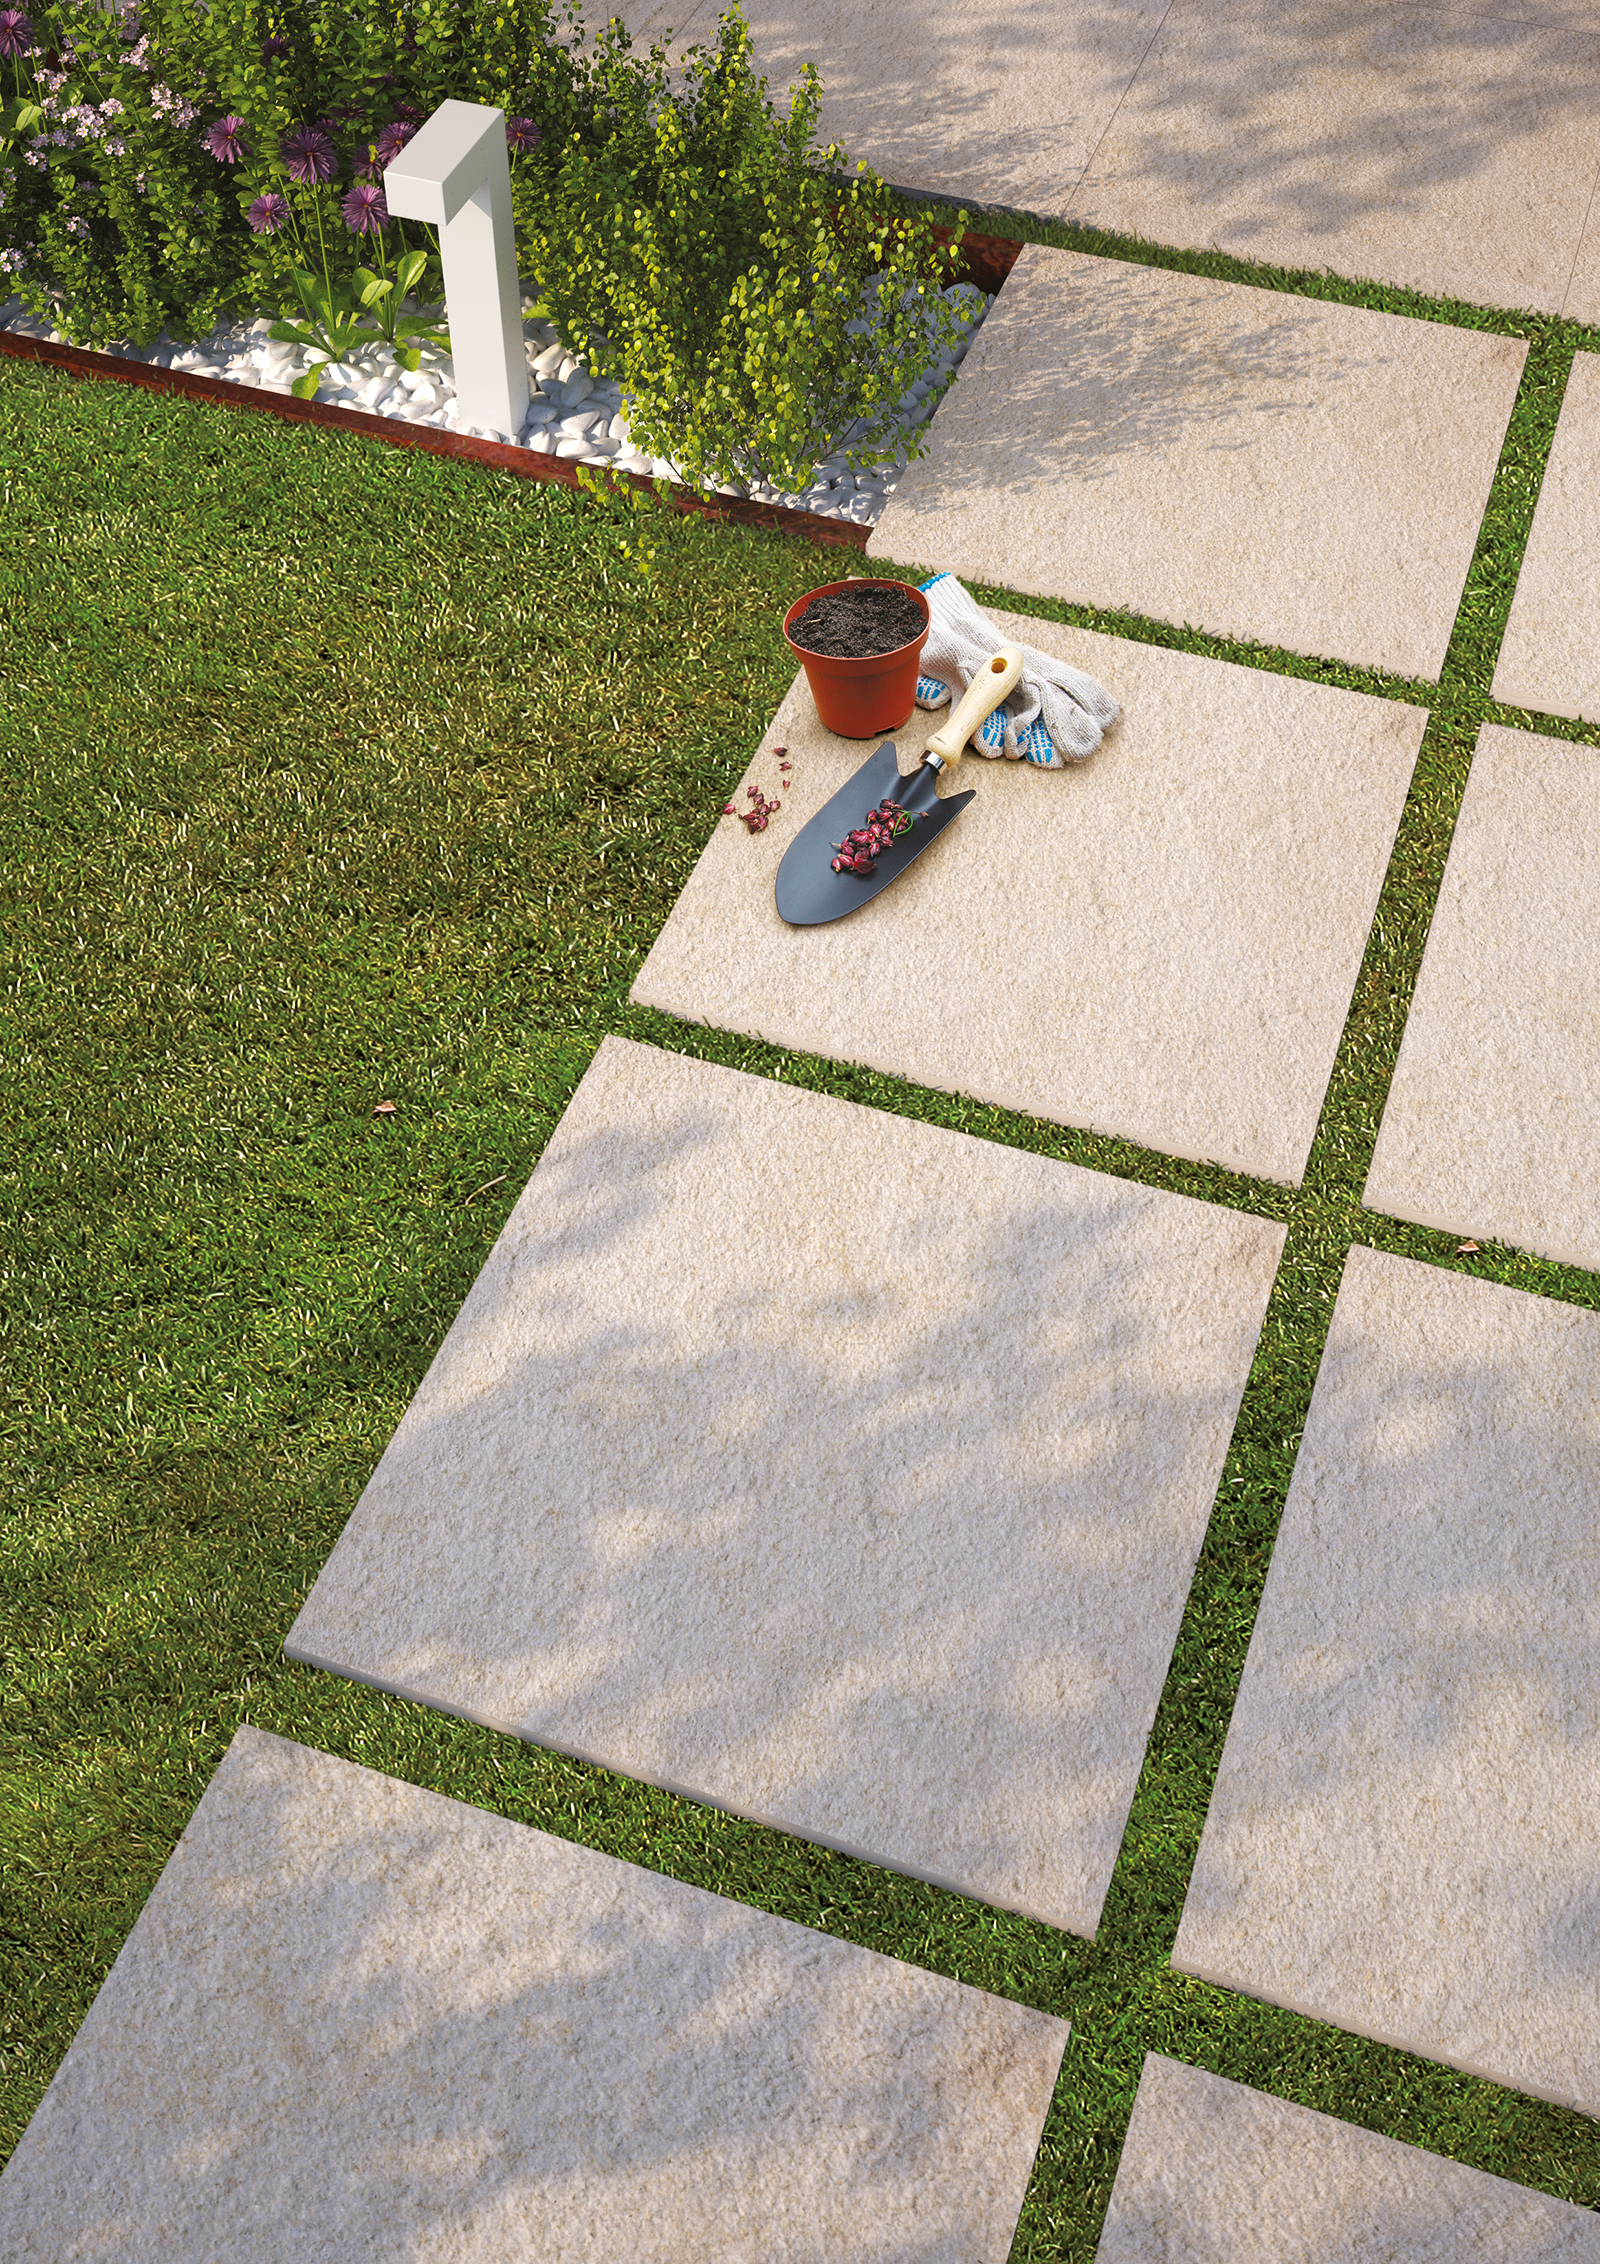 Multiquartz20 thick outdoor porcelain stoneware marazzi multiquartz20 ceramic tiles marazzi5178 dailygadgetfo Images